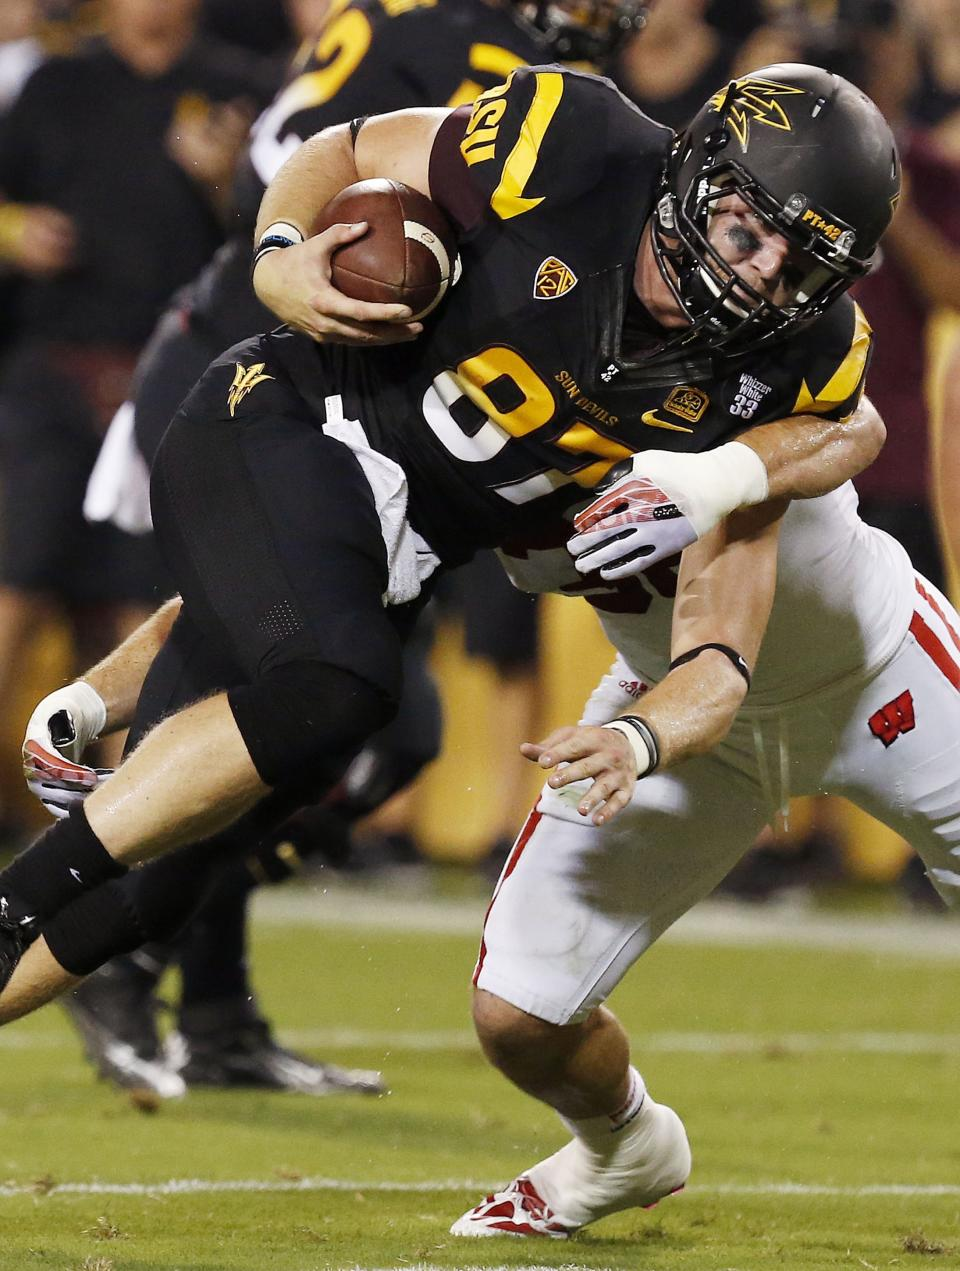 Arizona State's Chris Coyle, left, breaks a tackle against Wisconsin's Ethan Armstrong in the first half of an NCAA college football game on Saturday, Sept. 14, 2013, in Phoenix. (AP Photo/Ross D. Franklin)